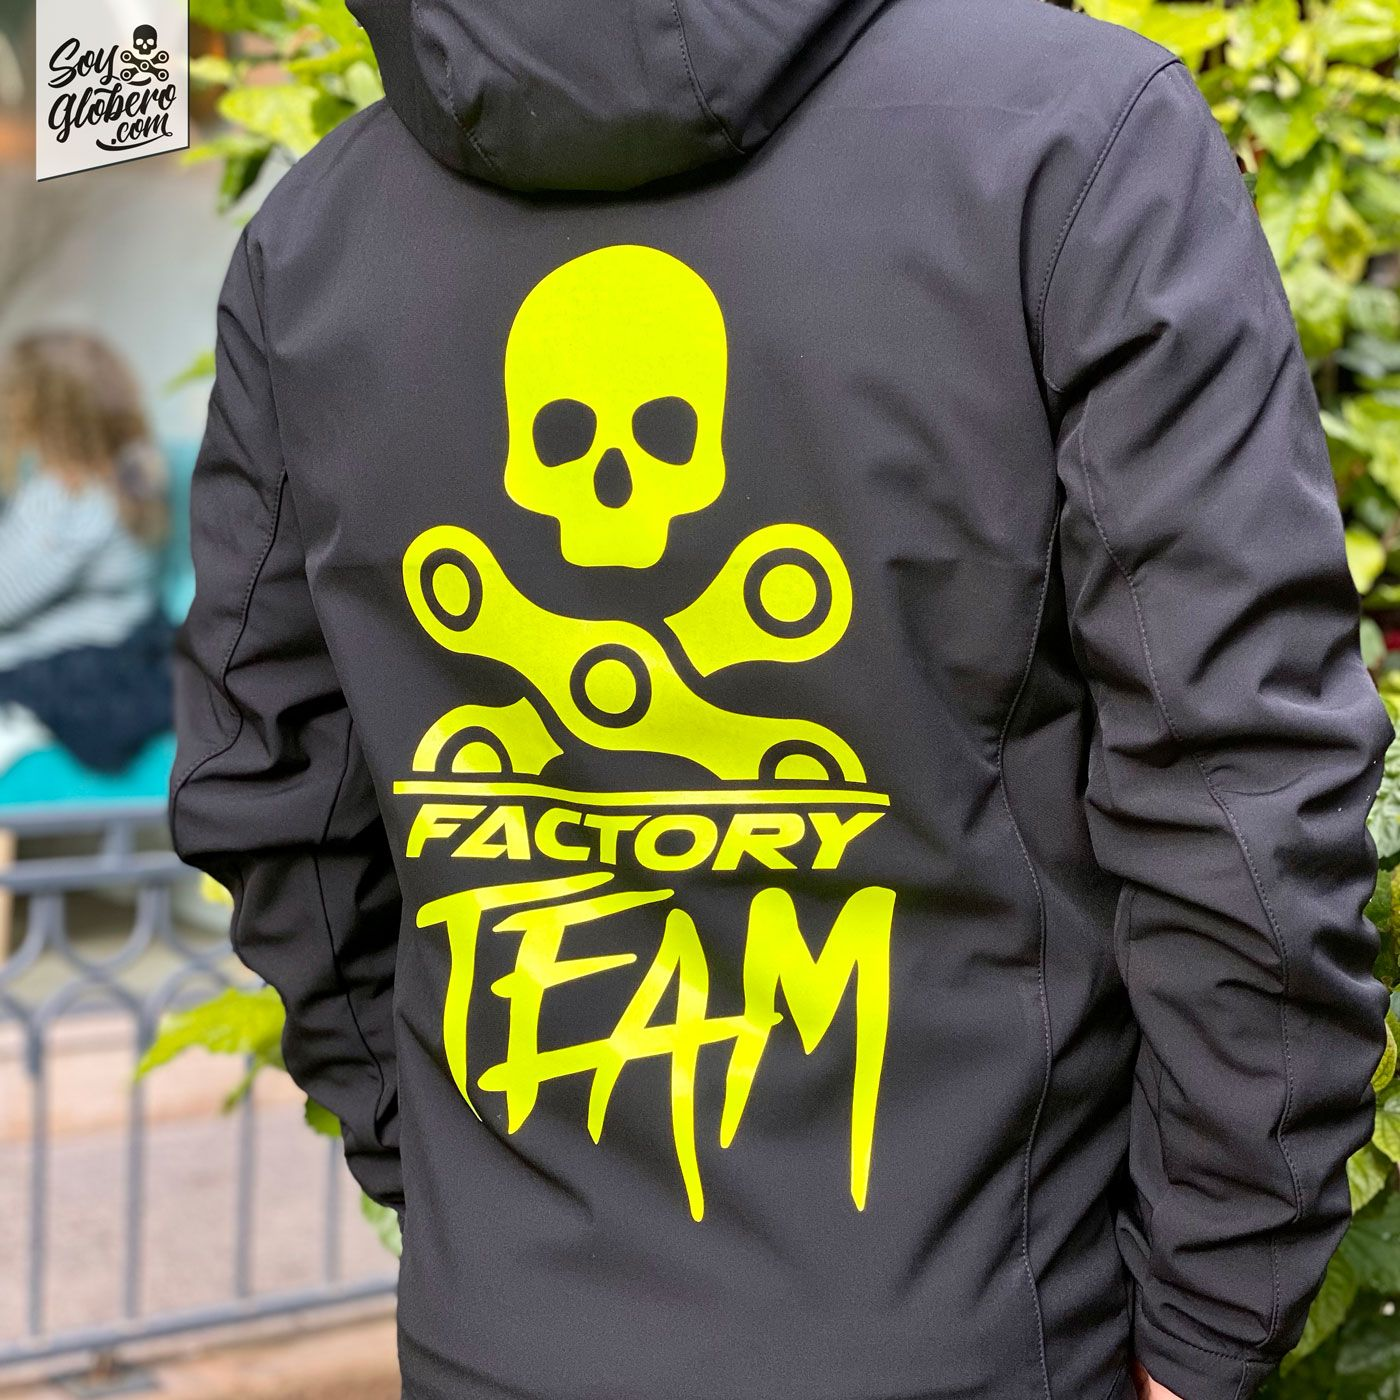 Chaqueta Factory Team